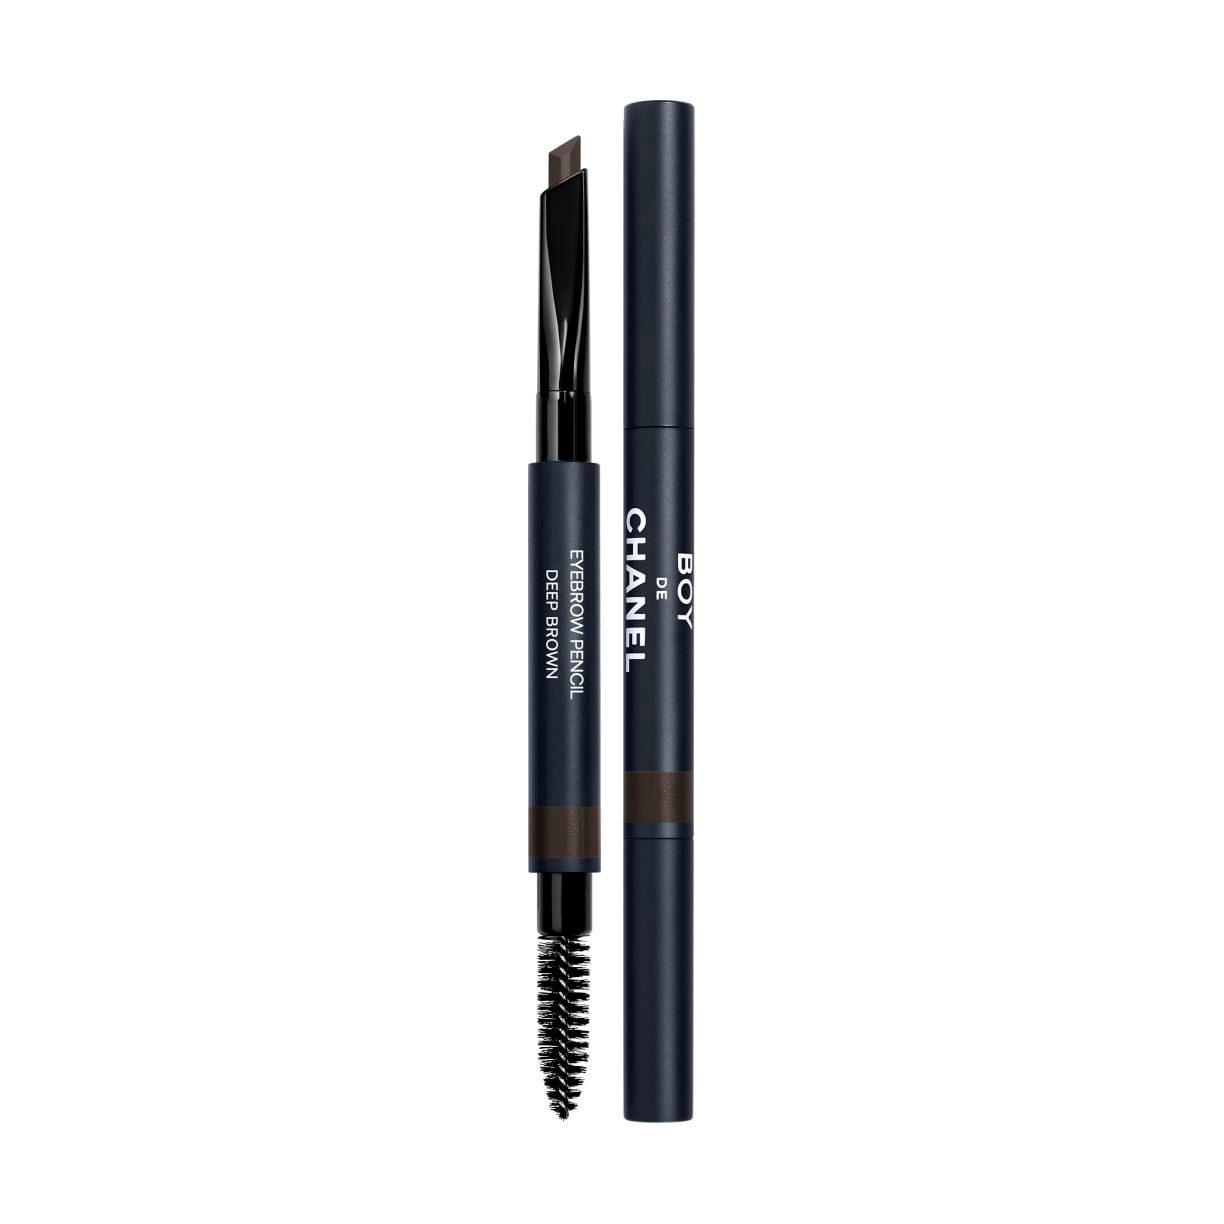 BOY DE CHANEL EYEBROW PENCIL WATERPROOF AND LONGWEARING EYEBROW PENCIL 206 DARK BROWN 0.27G